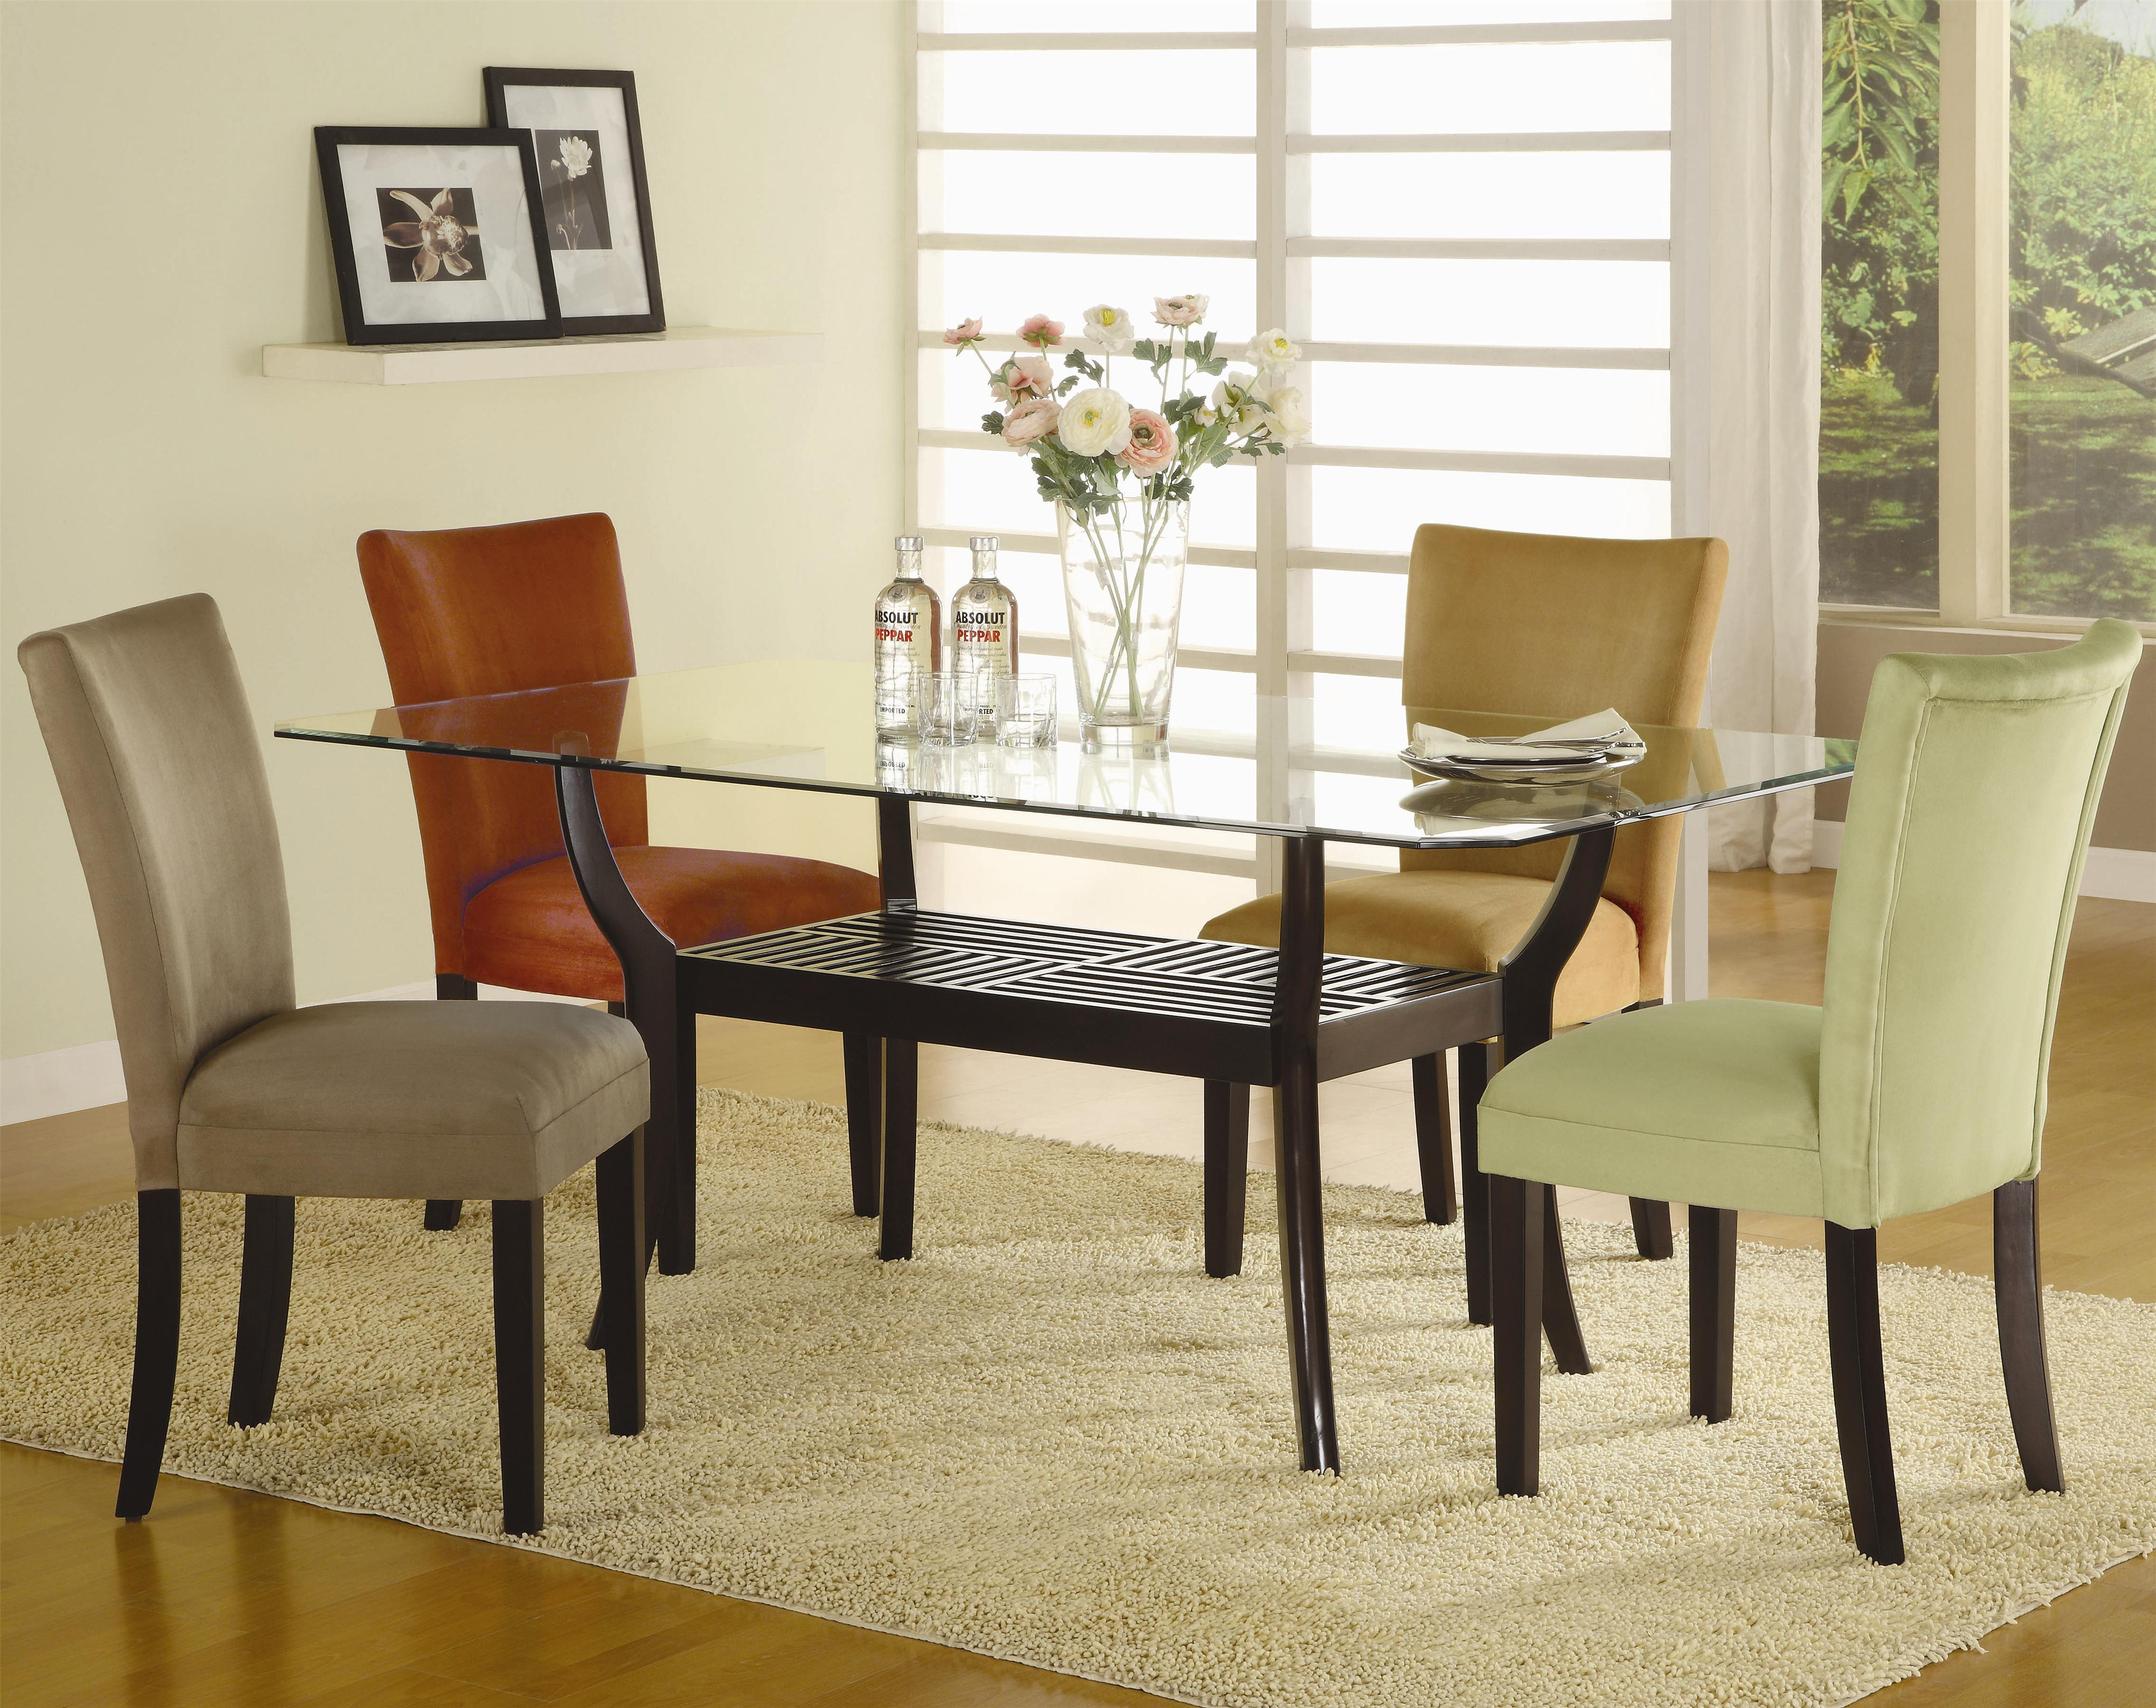 Coaster Bloomfield 5 Piece Dining Set - Item Number: 101491+CB4272+101492+3+4+5